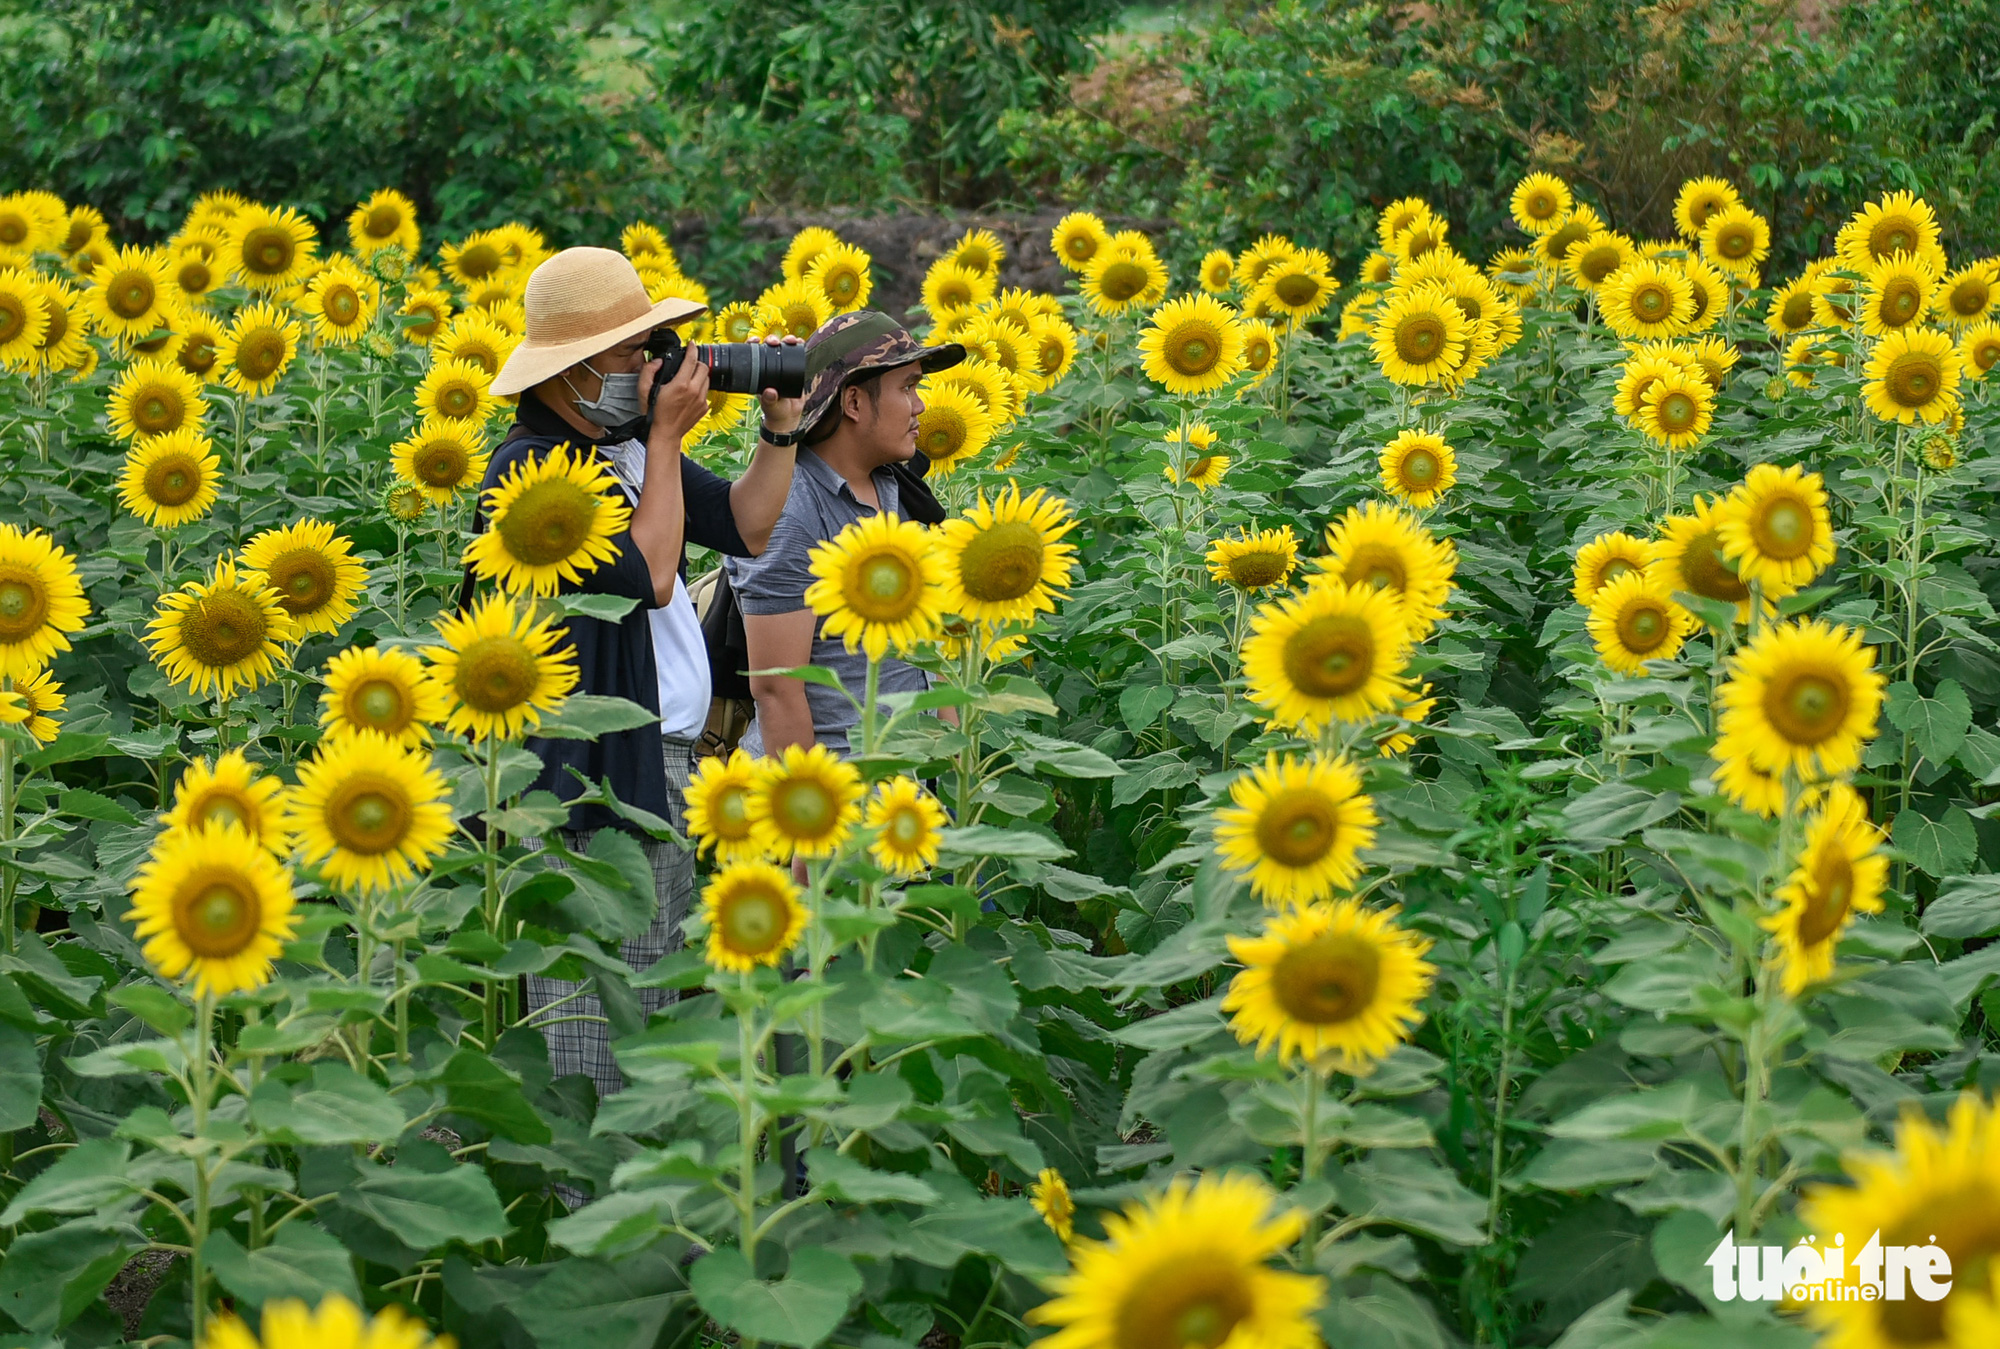 A man takes photos at a sunflower garden located in District 9, Ho Chi Minh City, Vietnam. Photo: Ngoc Phuong / Tuoi Tre